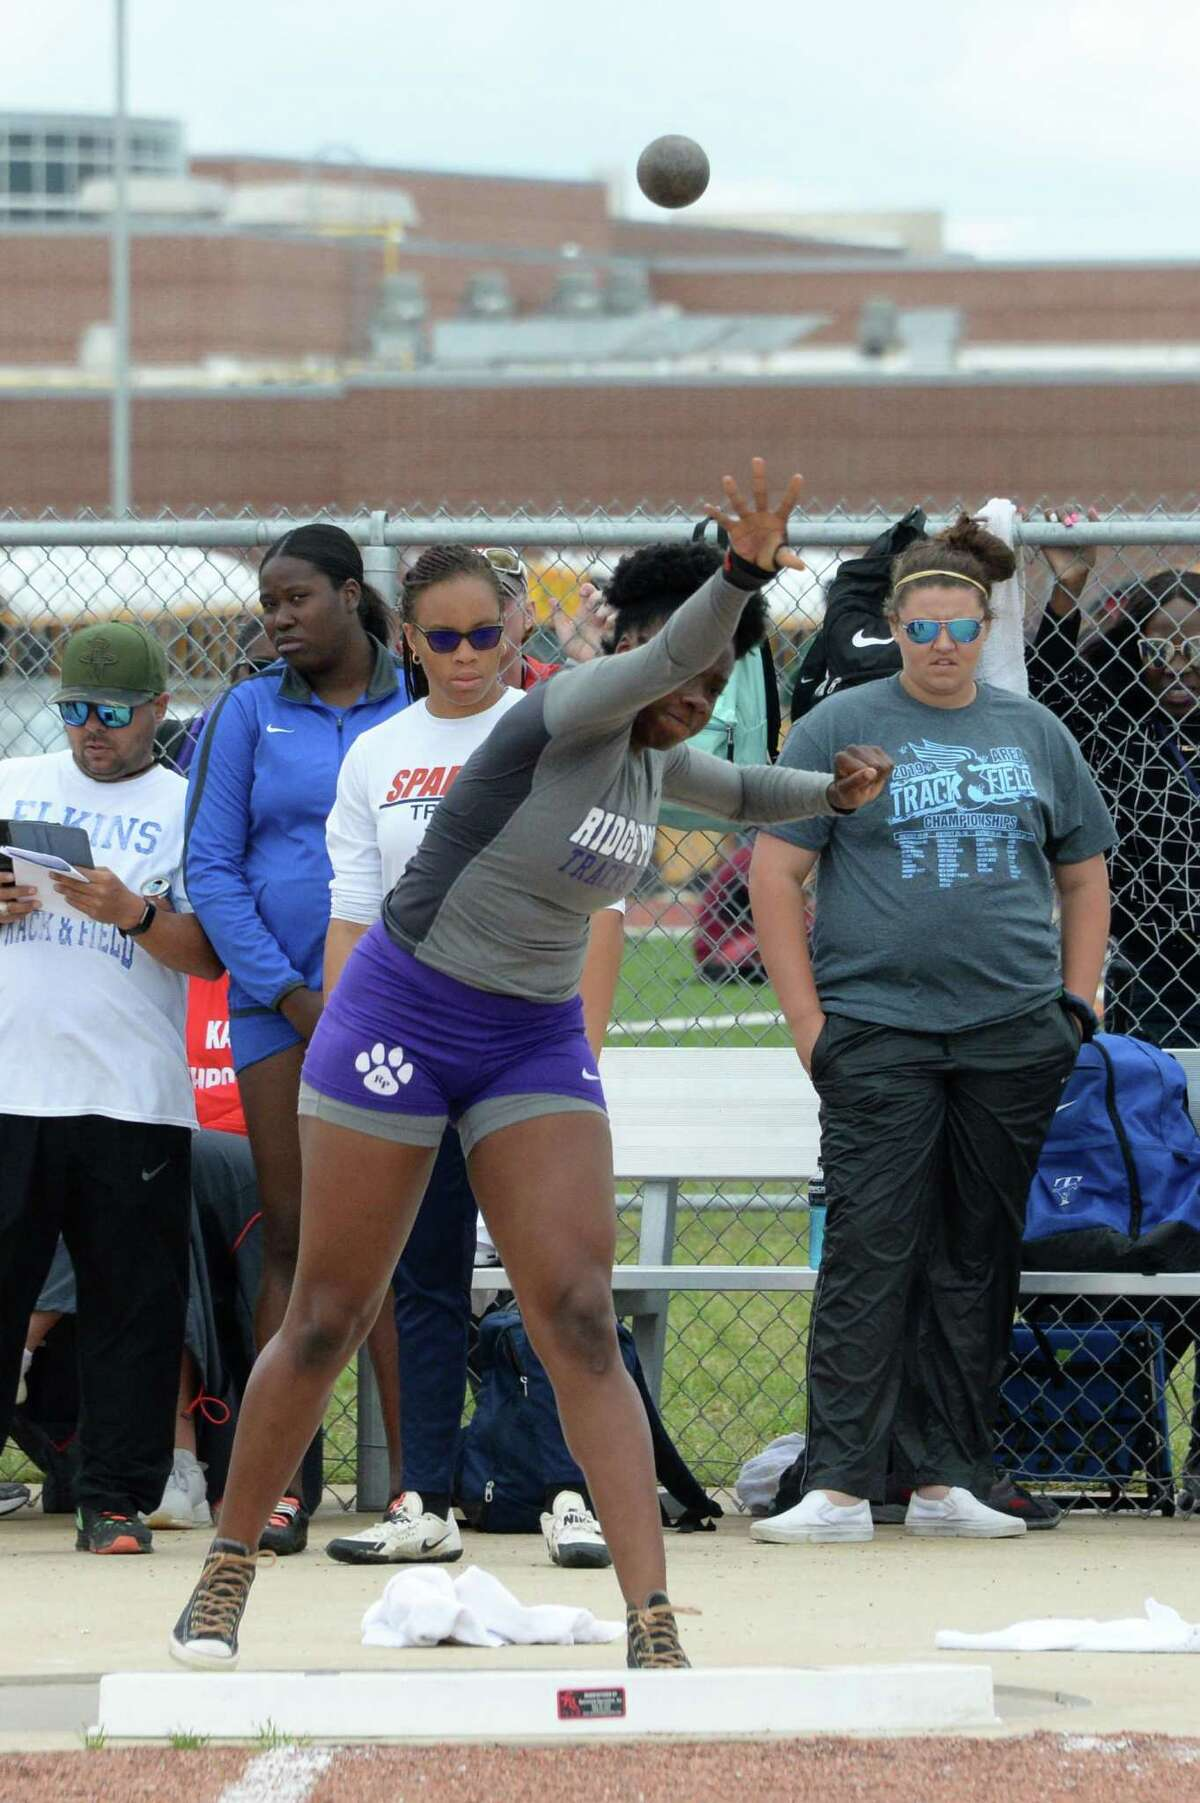 Jordan Houston of Ridge Point competes in the shot put competition during the District 19/20, Region III - 6A Area Track & Field Meet on Thursday April 18, 2019 at the Paetow High School, Katy, TX.